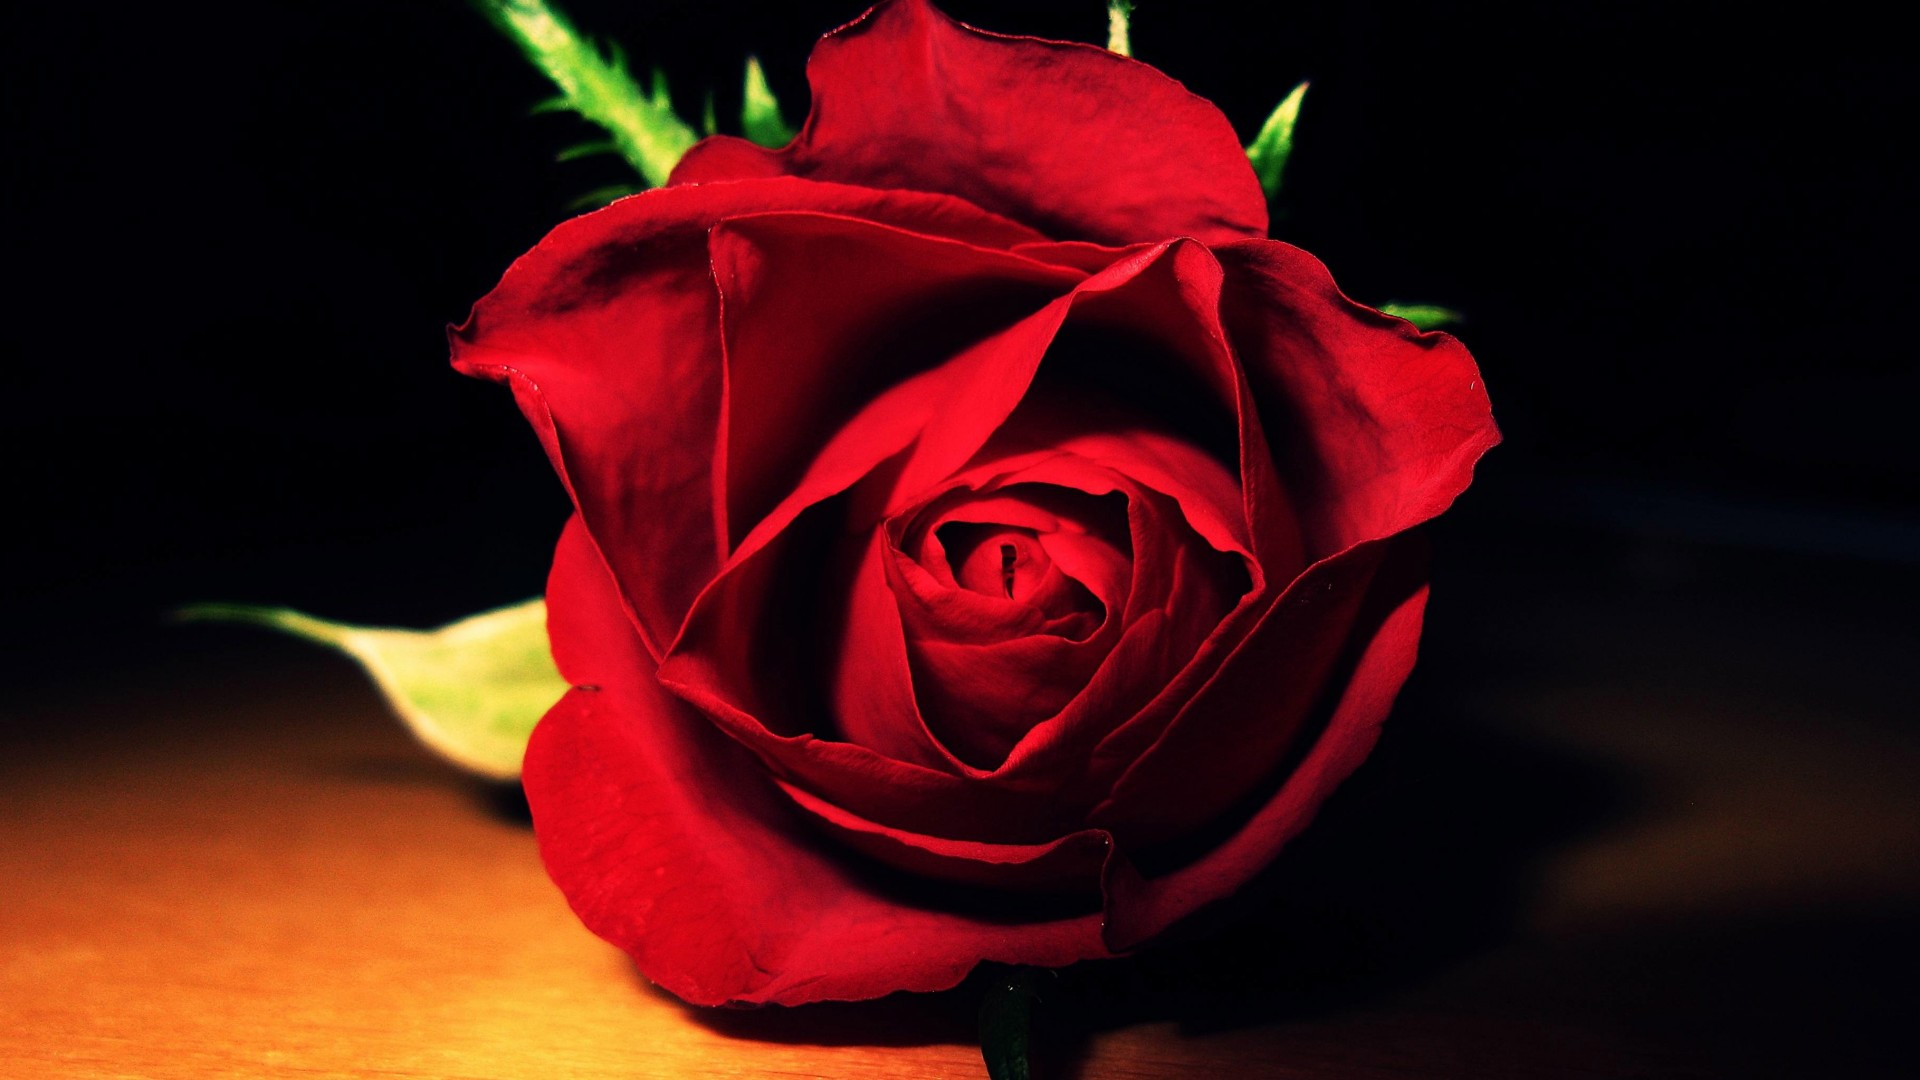 Red Rose Very Nice Flower Wallpaper Background